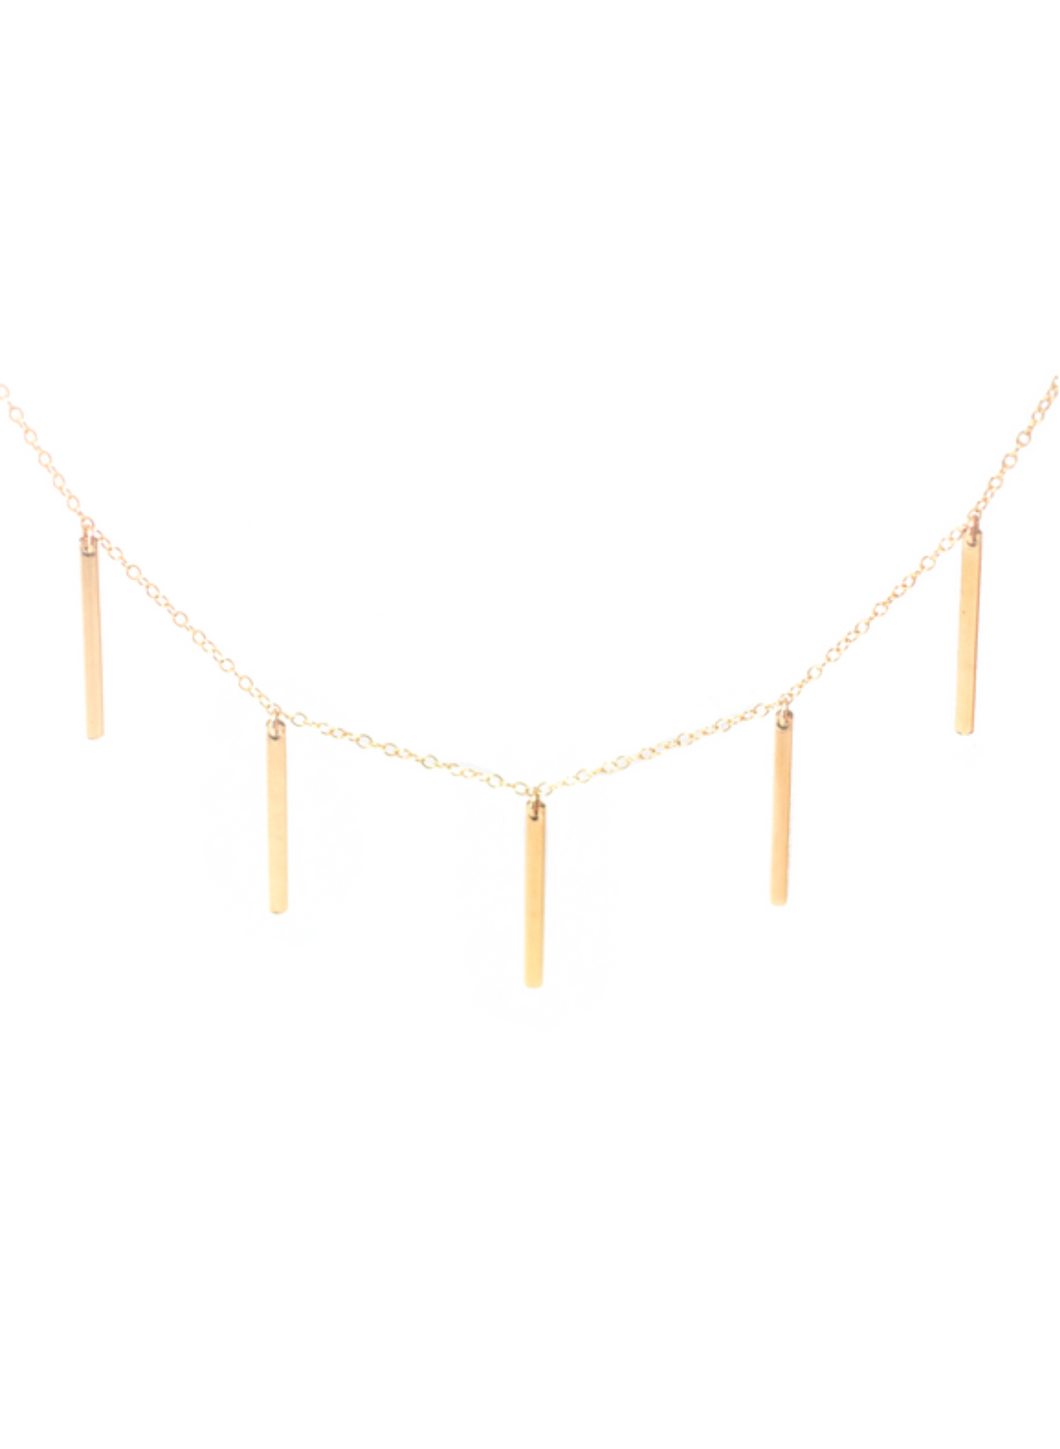 STELLAR NECKLACE IN GOLD